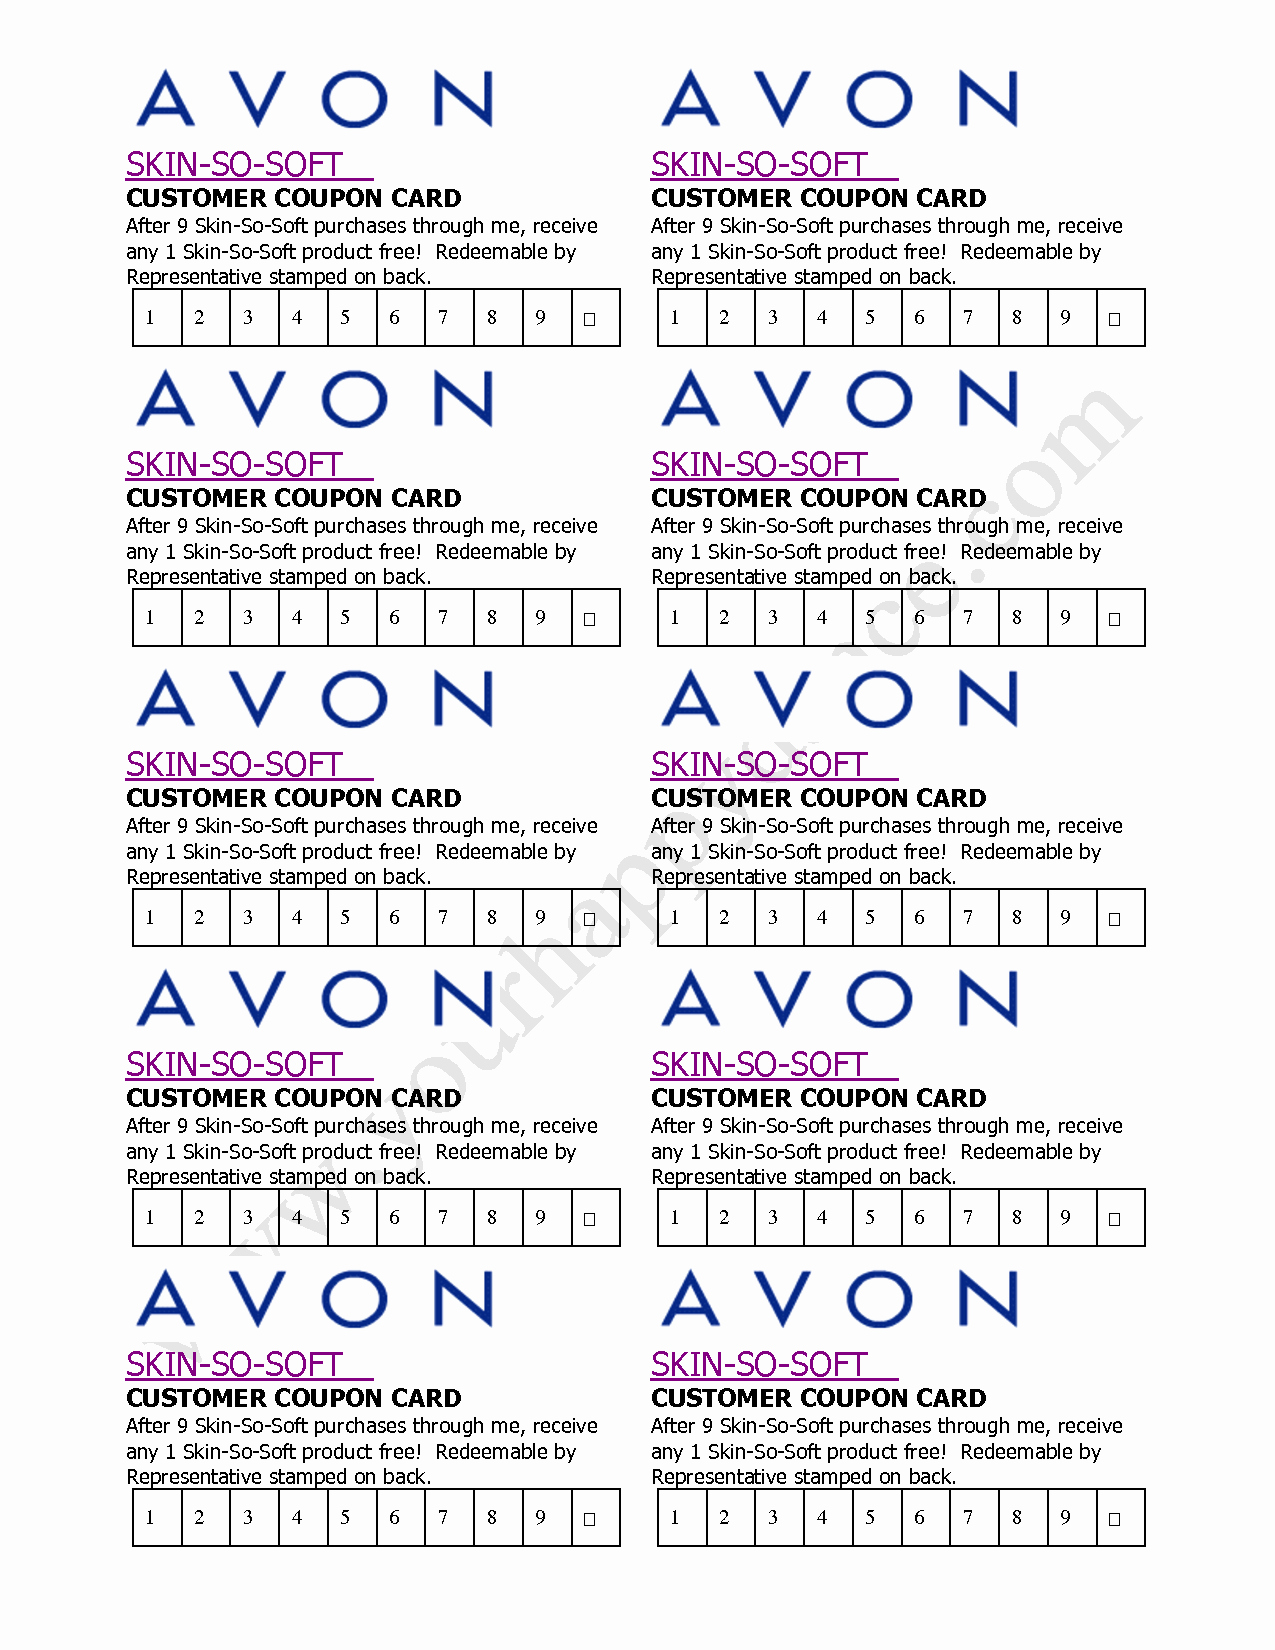 Business Card Template Free Printable Awesome Avon Business Card Template Free Printable Avon Business